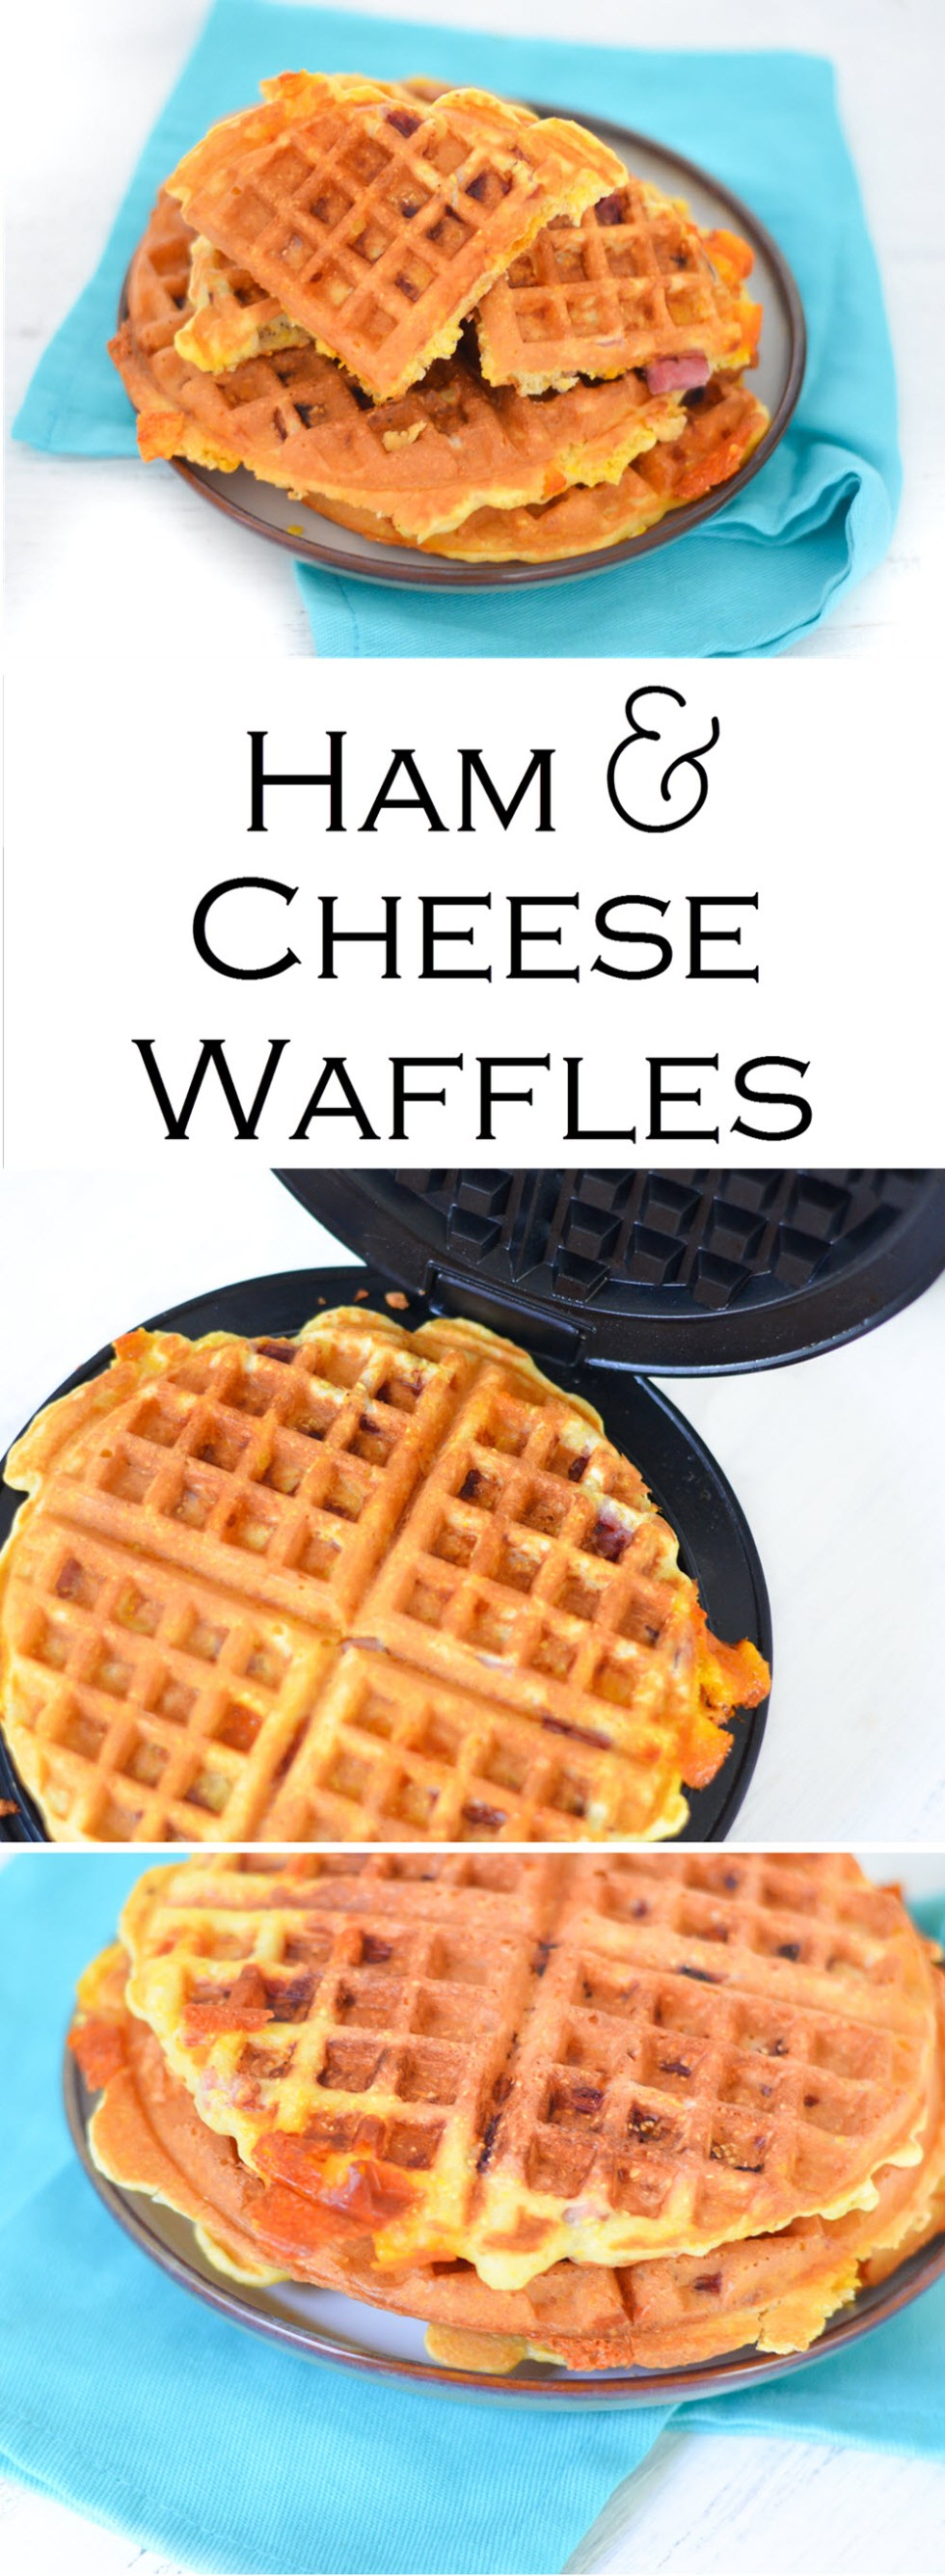 Ham and Cheese Waffles (Use up Leftover Ham!)| Luci's Morsels